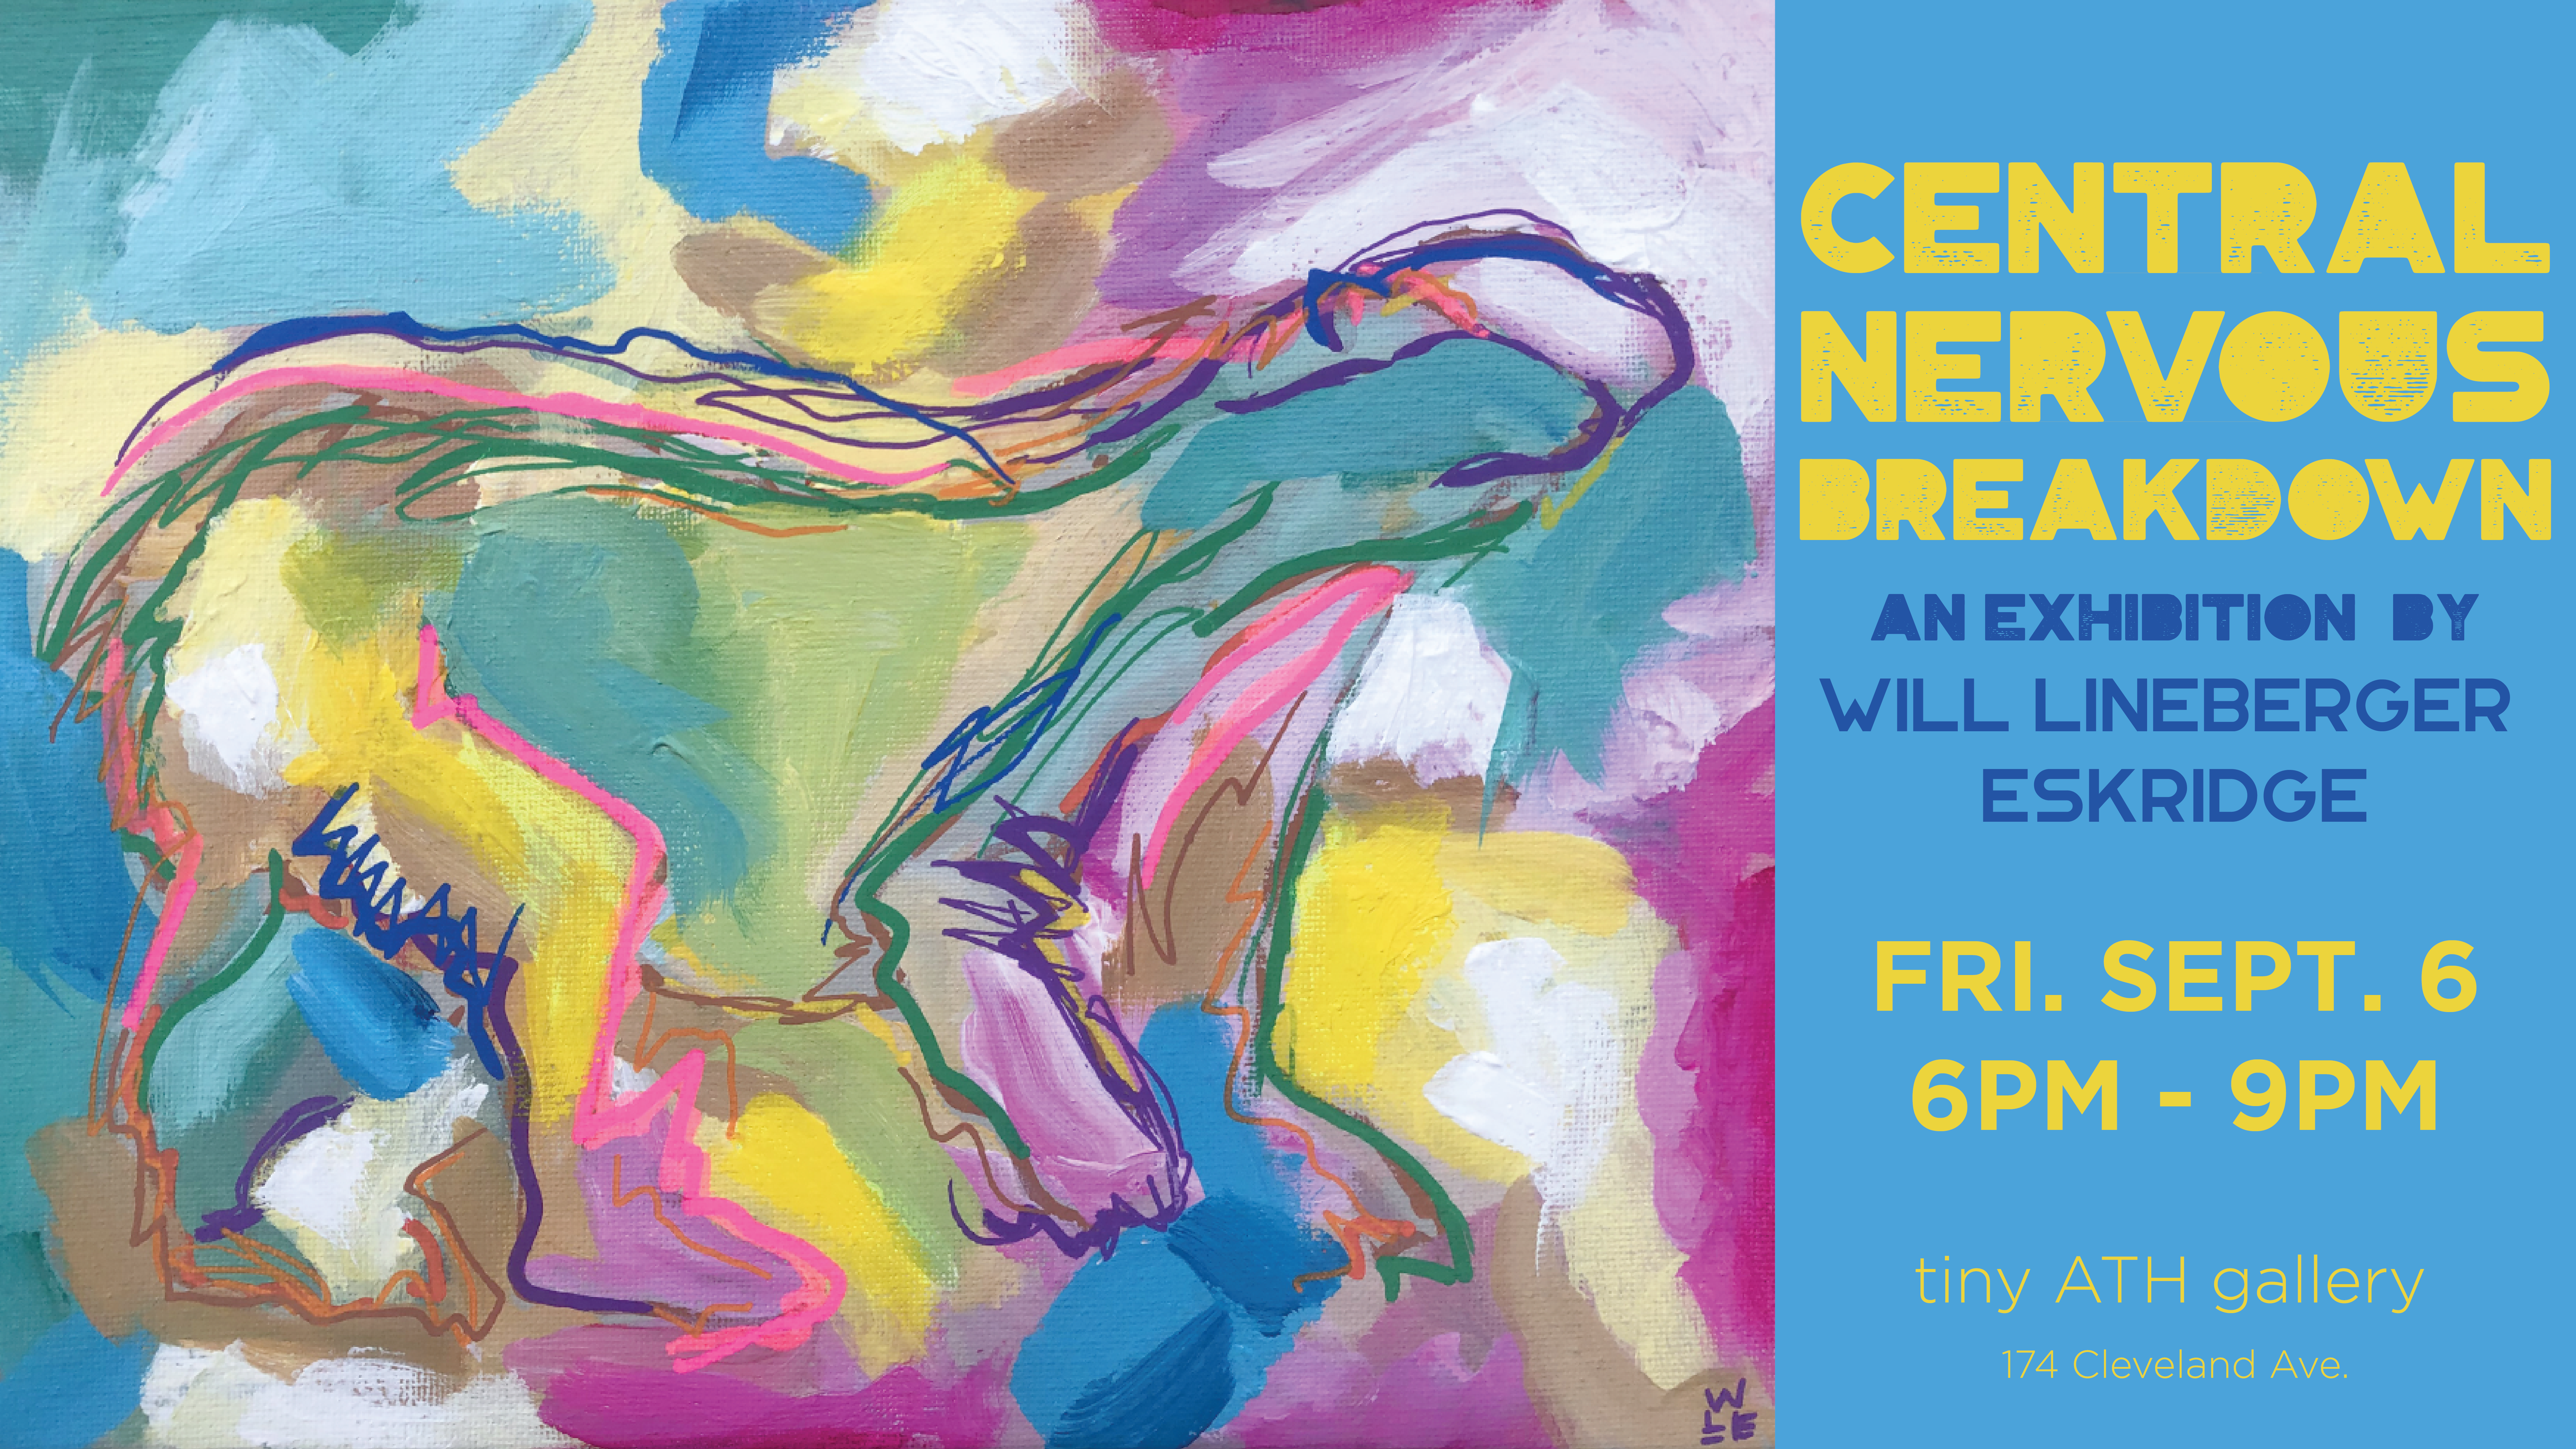 Central Nervous Breakdown Abstract Expressionist Animal Art Bright Colors Painting Will Eskridge